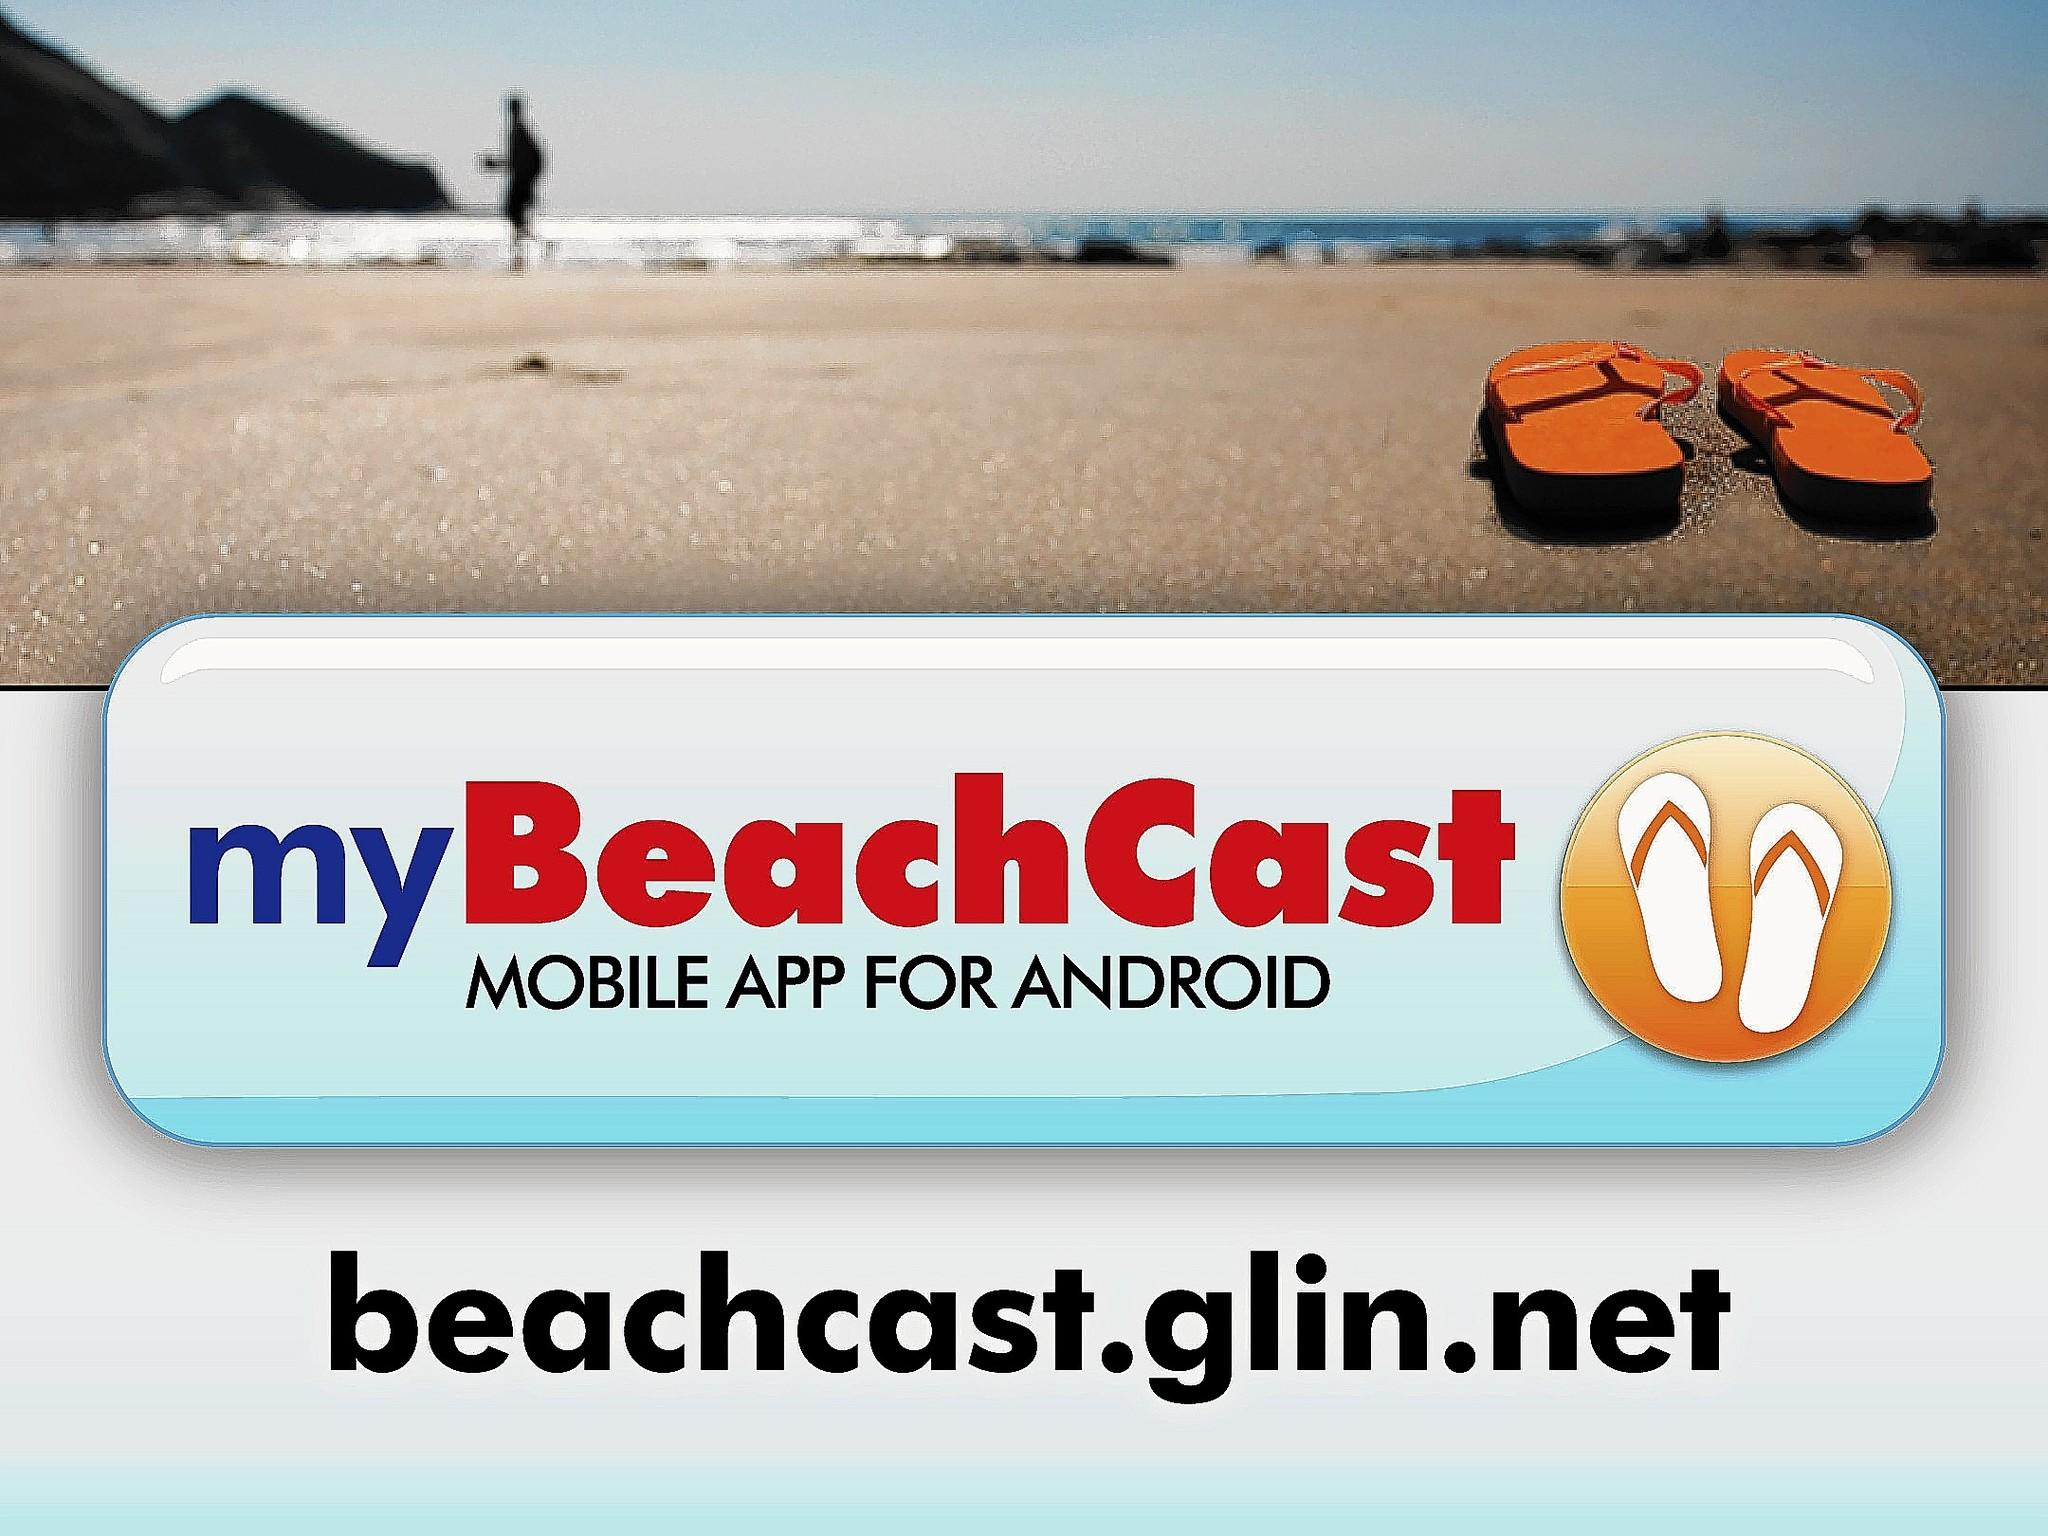 A mobile app will alert beachgoers about swim bans or closings in Lake County.